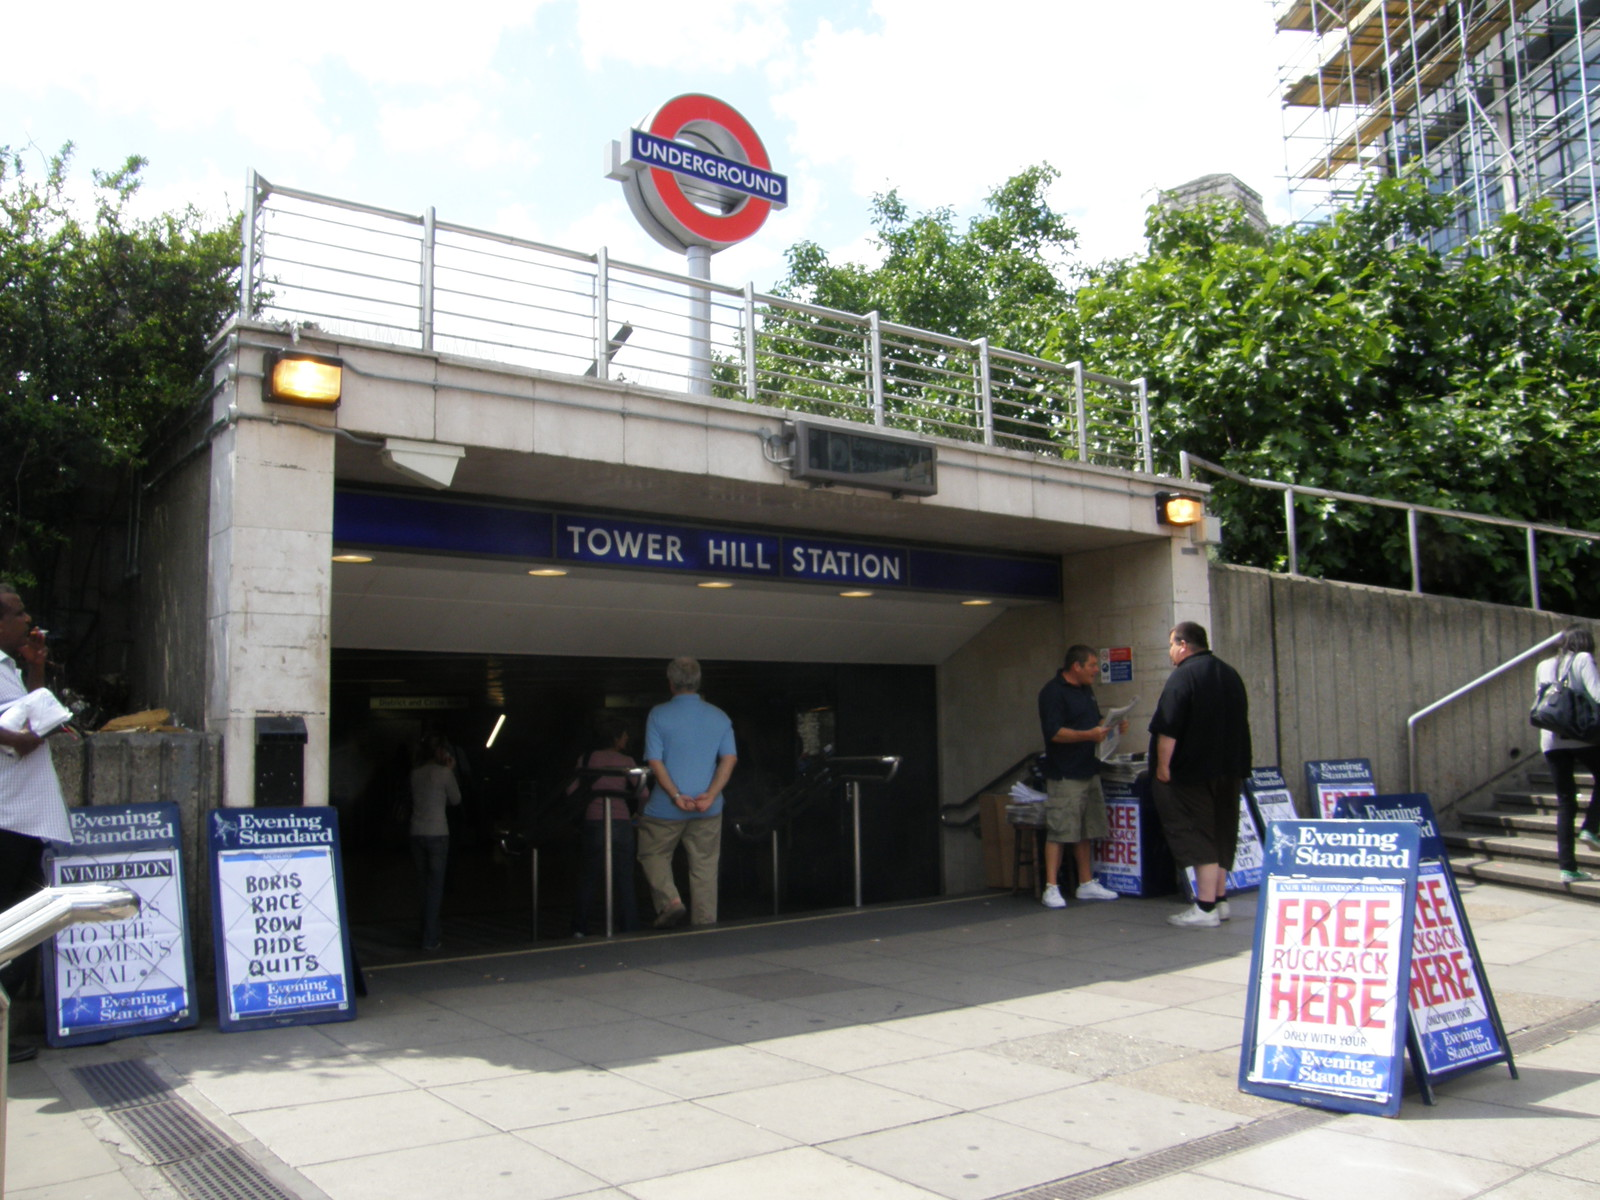 Tower Hill station